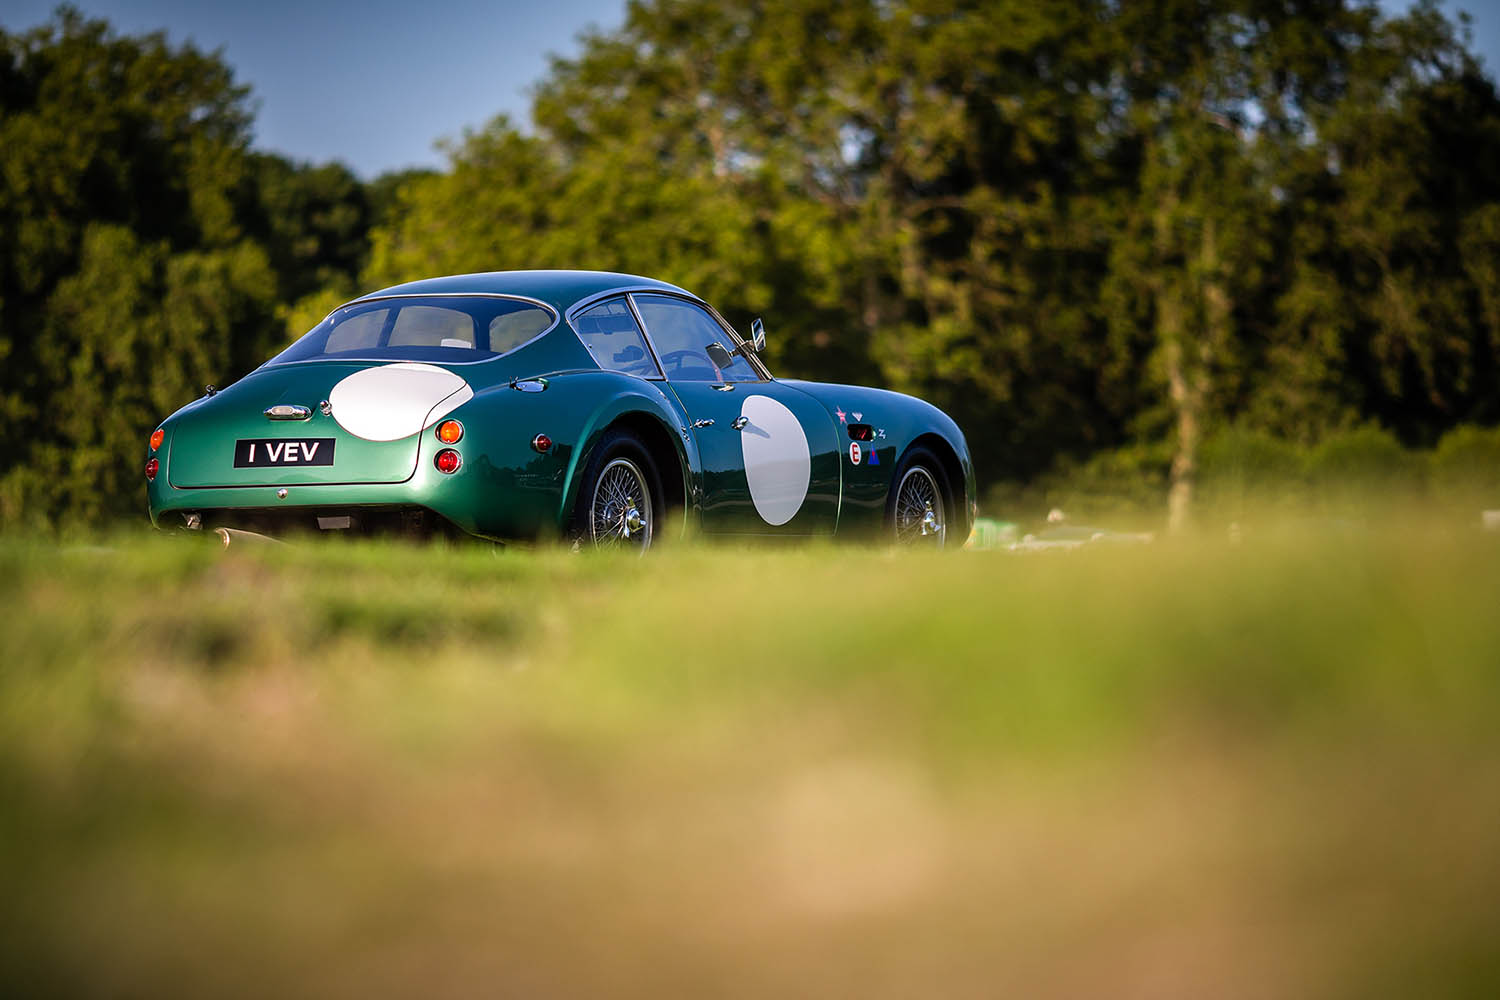 2019_PeterAuto_Chantilly_AlexisGoure_0991.jpg